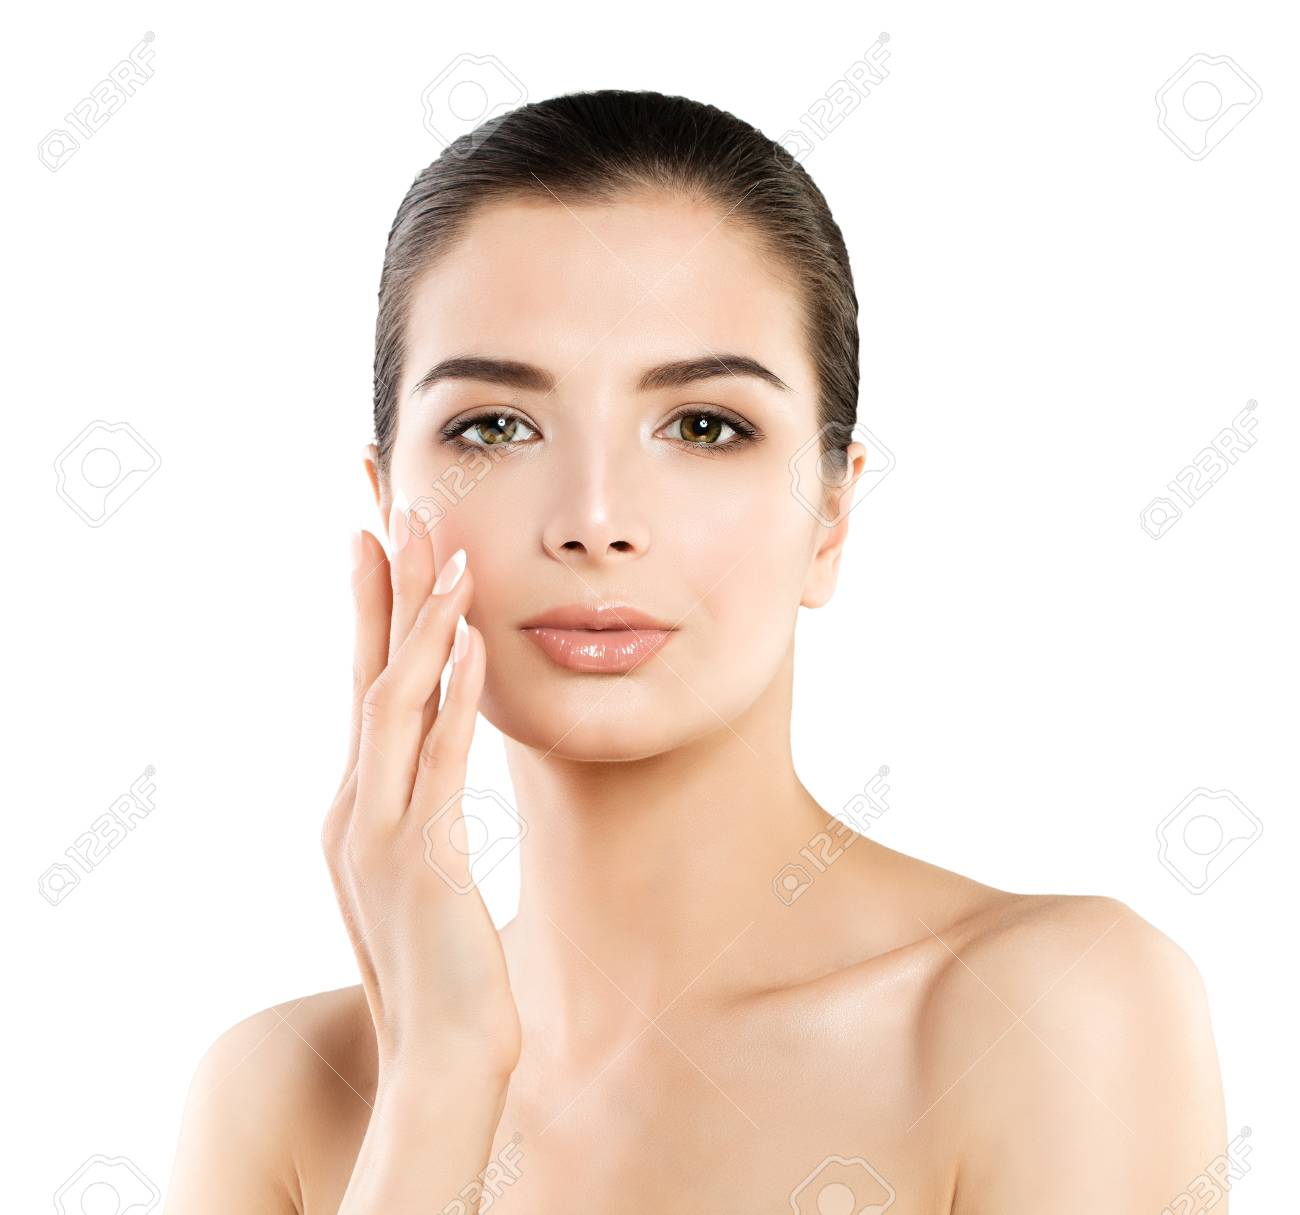 Cute Spa Model Woman With Healthy Skin Touching Her Hand Her Stock Photo Picture And Royalty Free Image Image 83911875